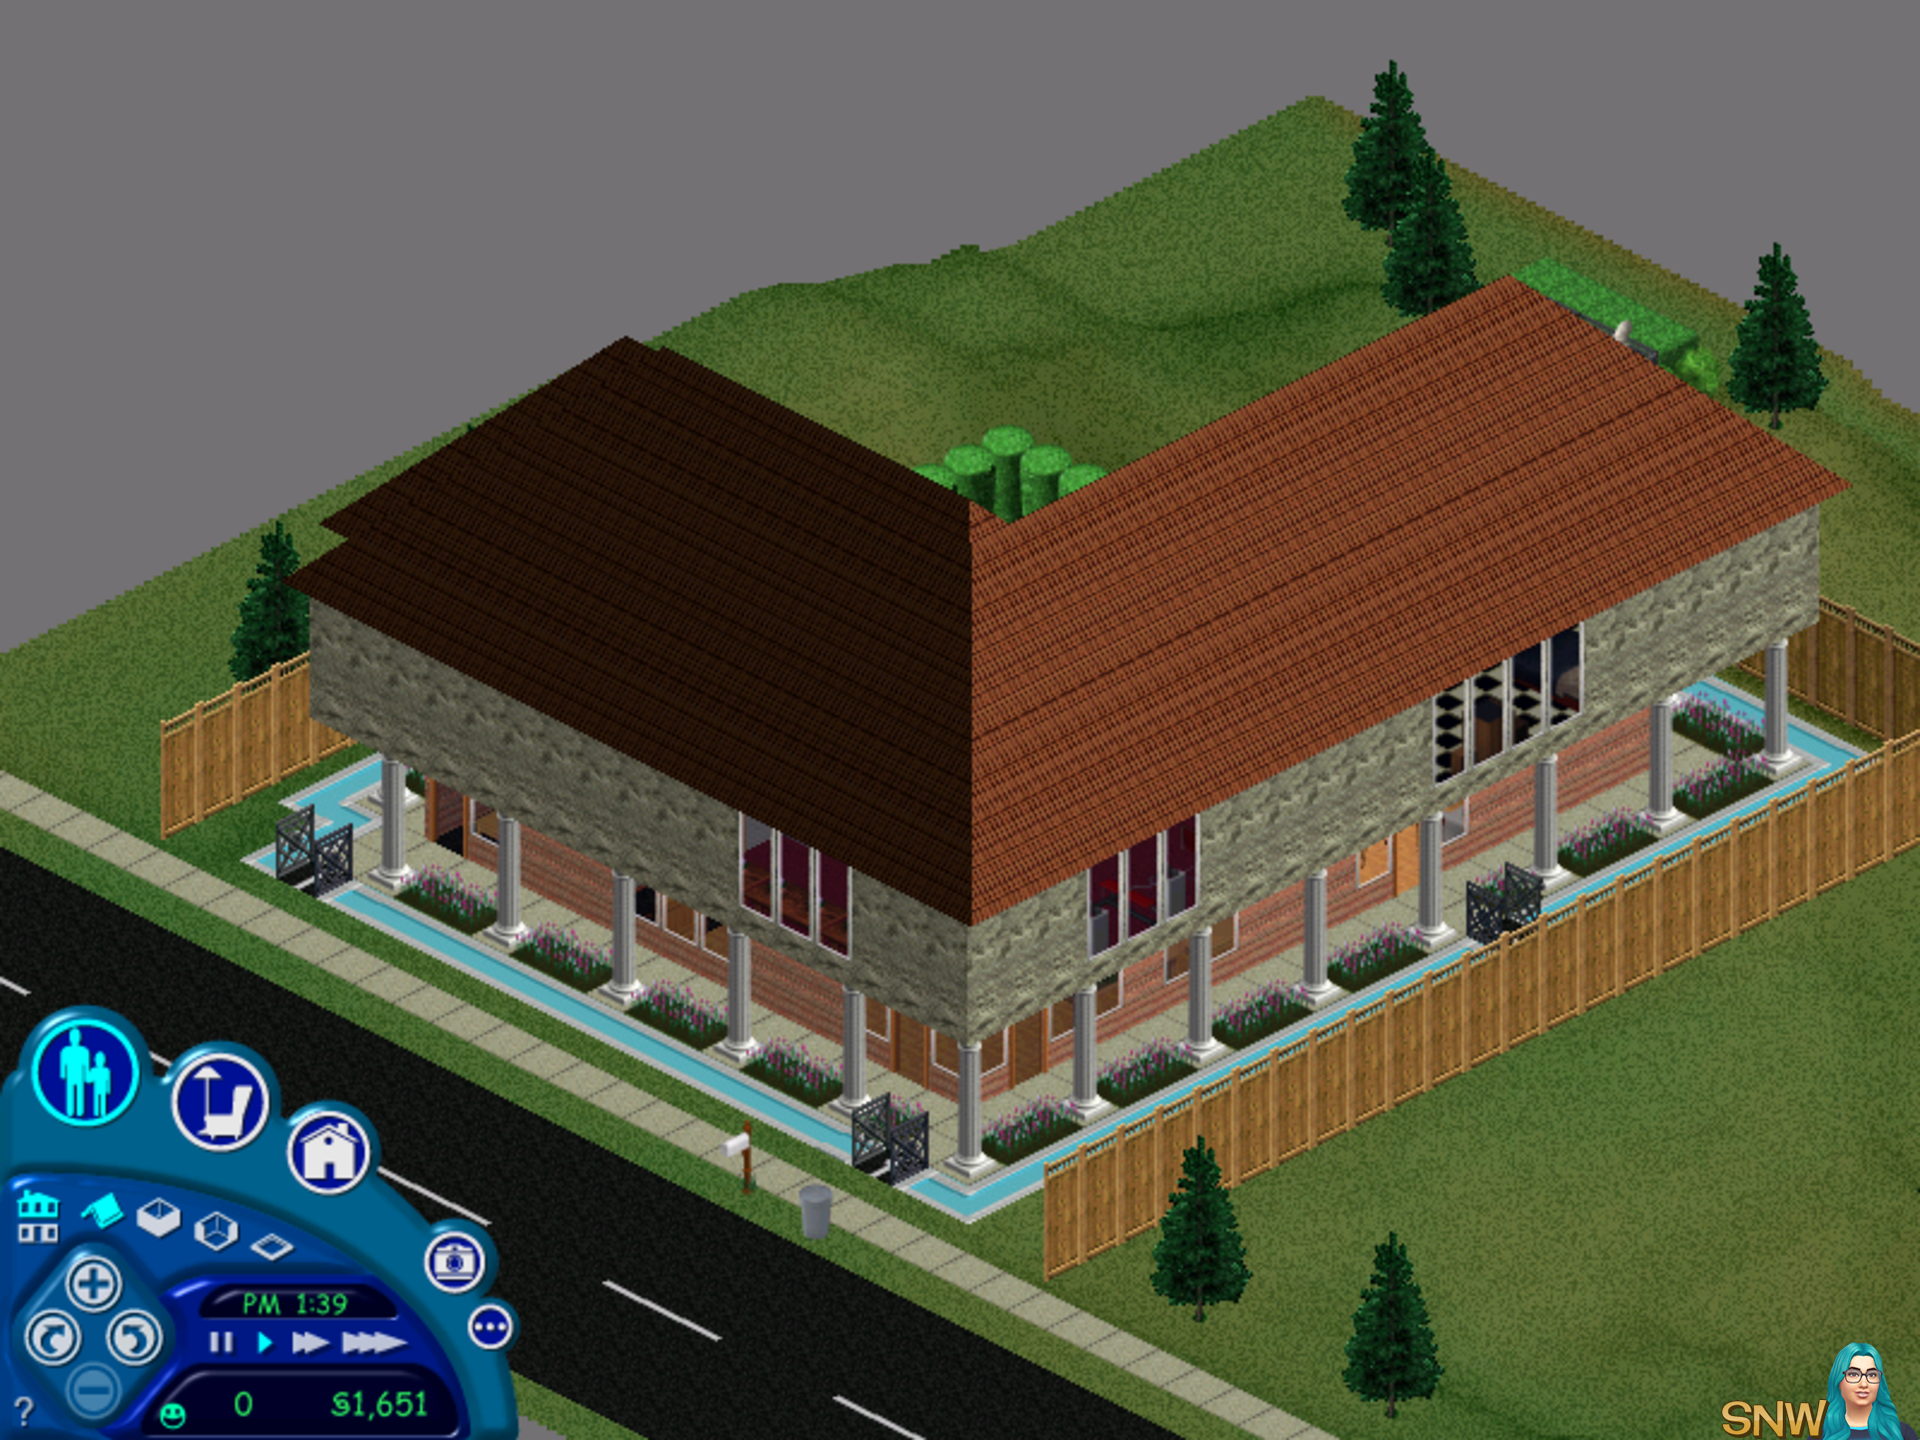 4 Sim Lane (Maximus house)